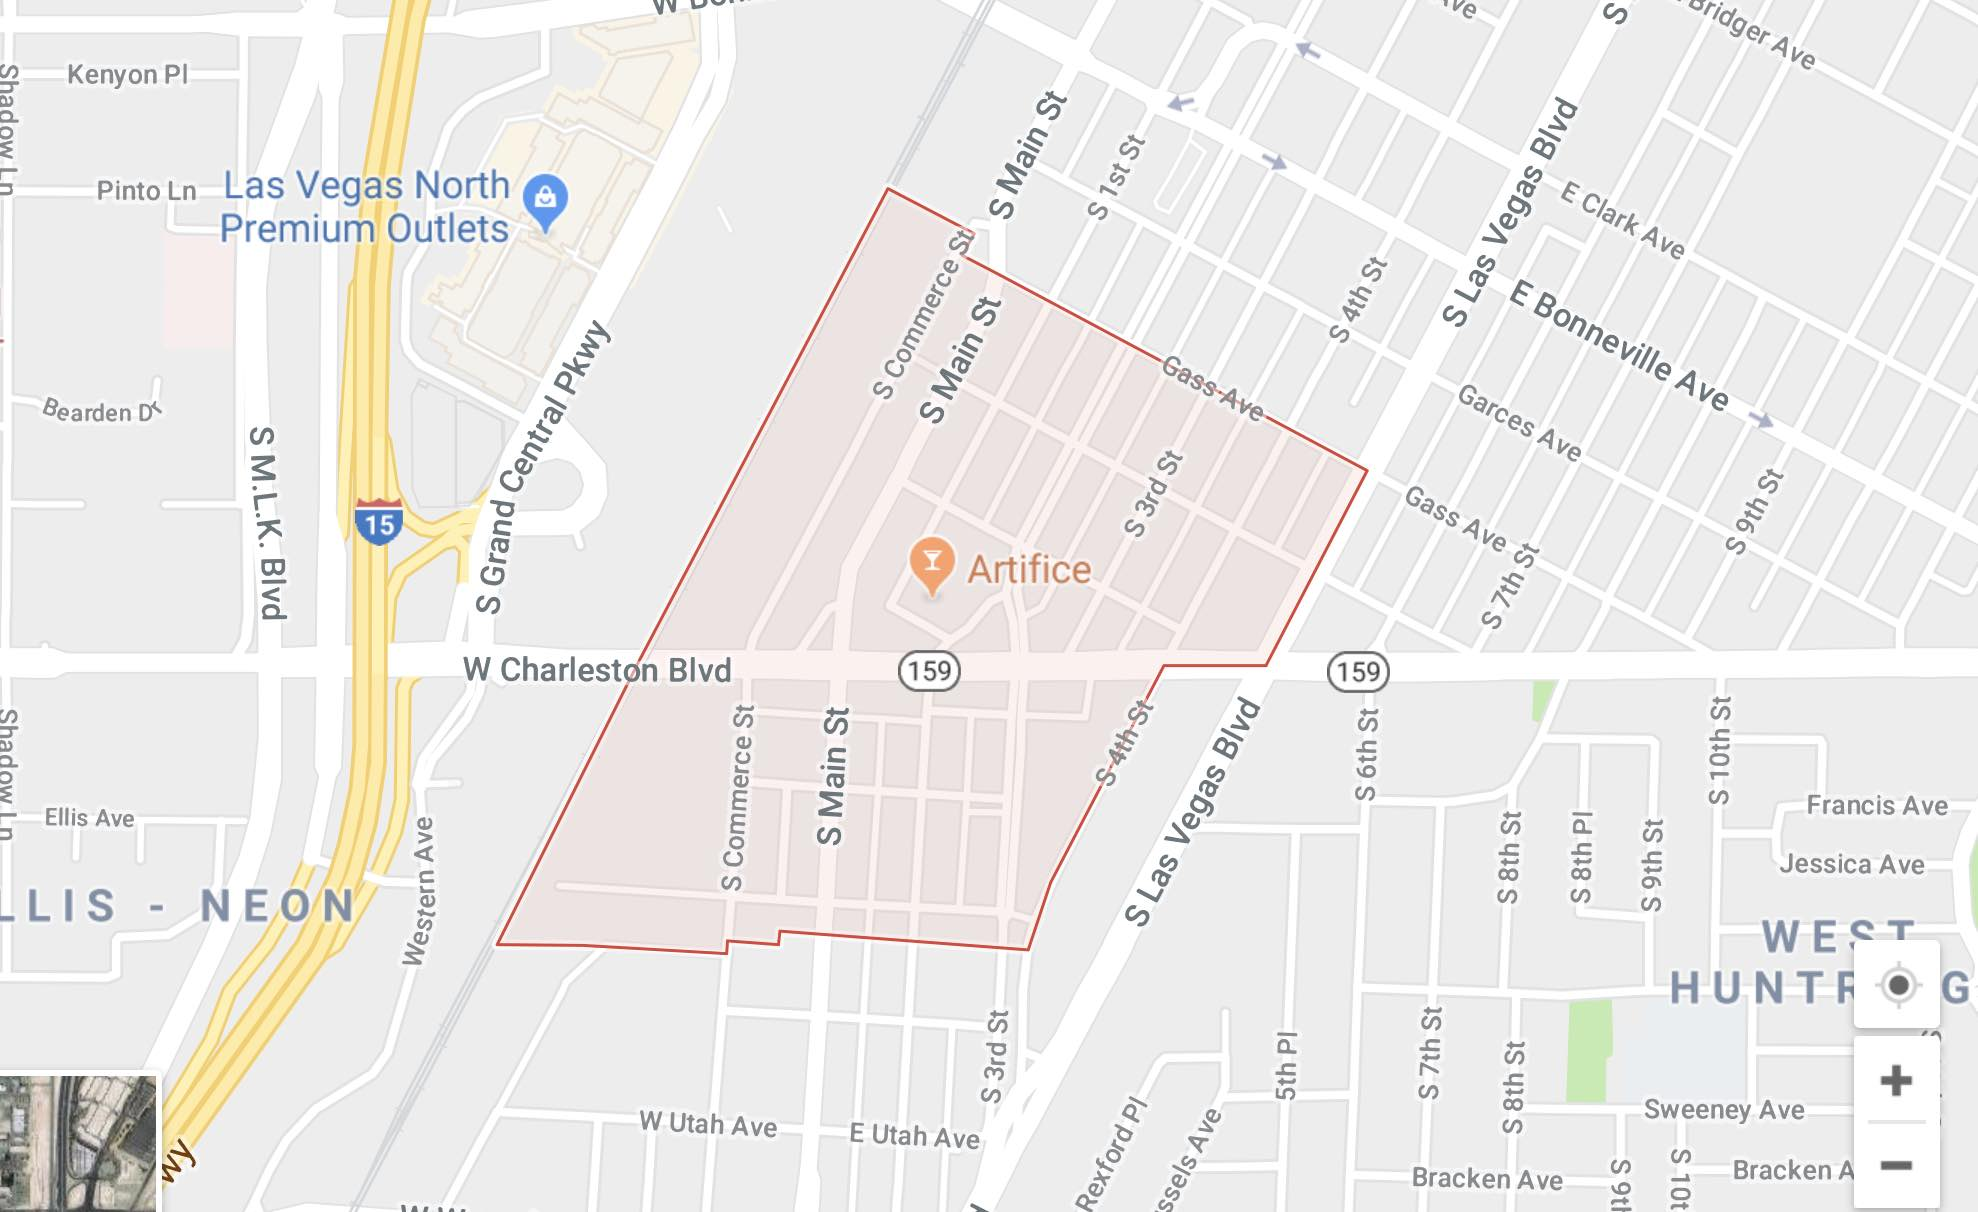 North Las Vegas Map Boundaries.A Guide To Visiting The Las Vegas Arts District 2019